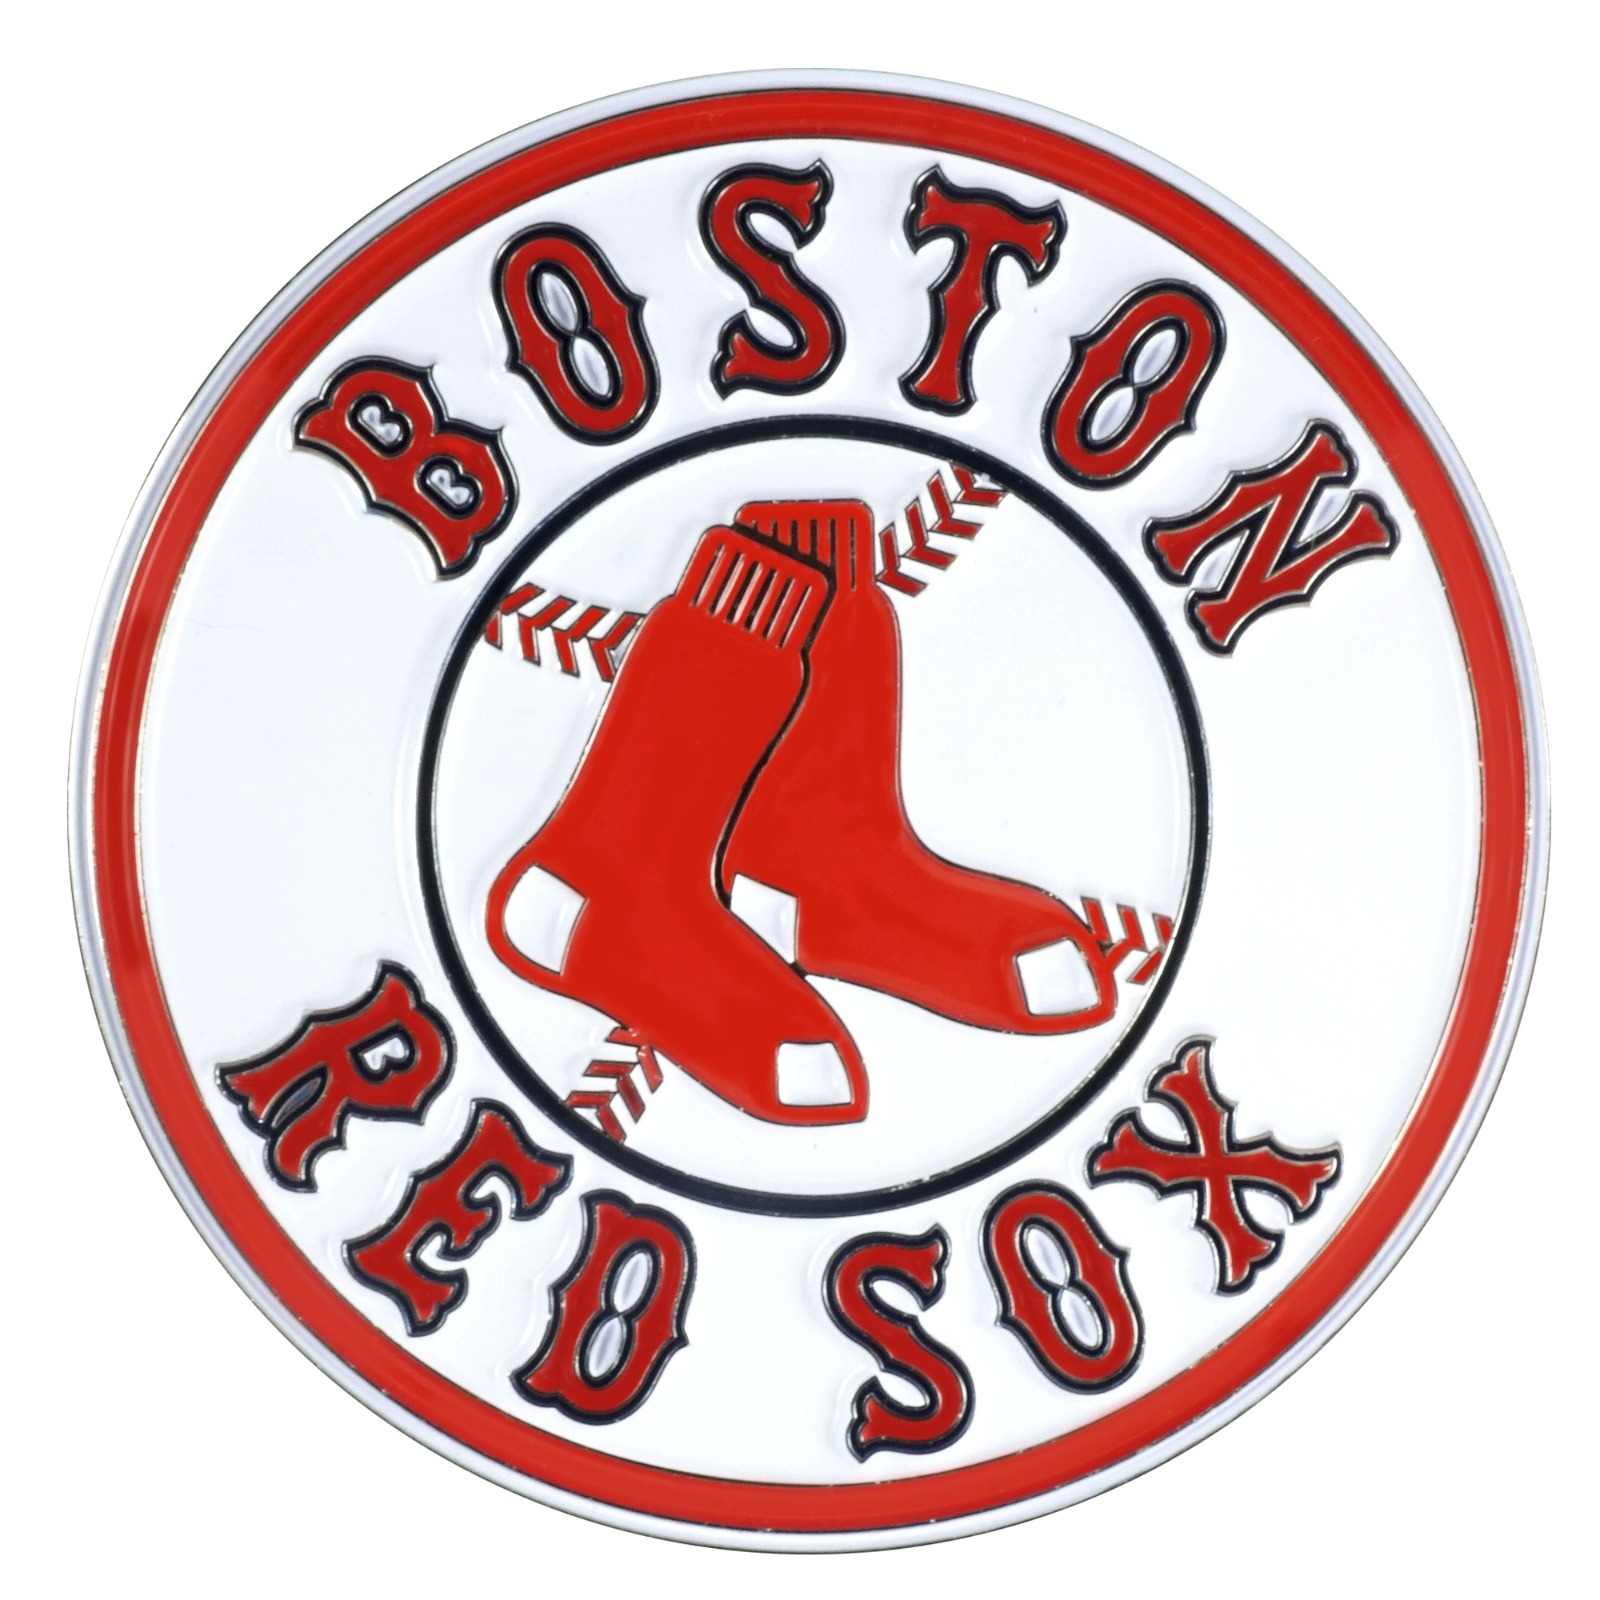 Details about Boston Red Sox Premium Solid Metal Color Raised Auto Emblem  Decal Baseball.